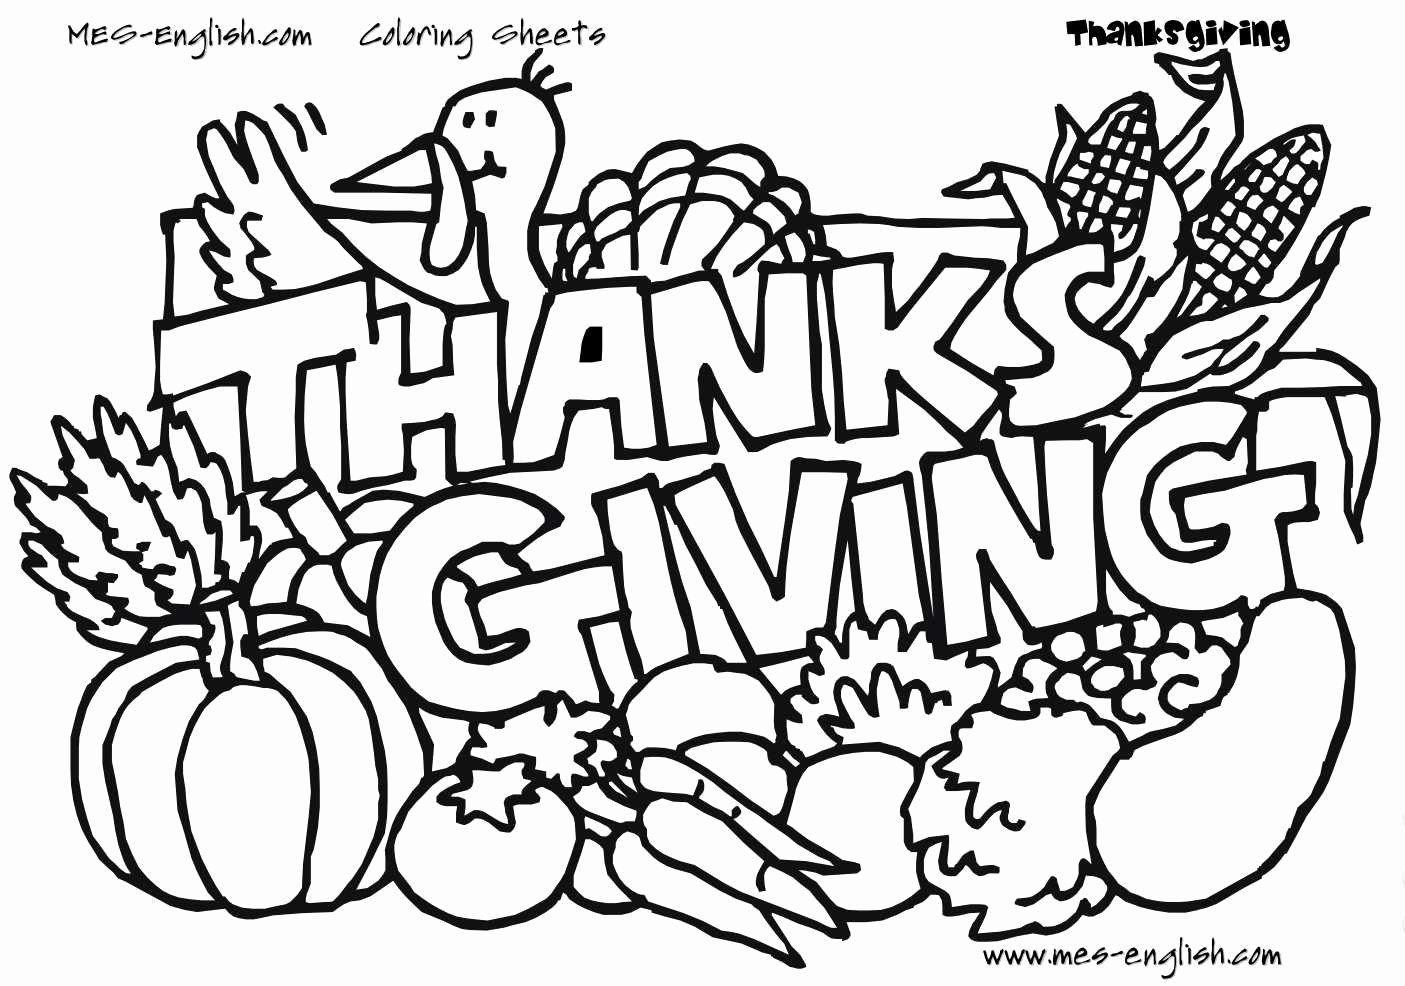 Turkey Body Coloring Page Luxury Fresh Turkey Clipart Coloring Pages Cleanty Gambar